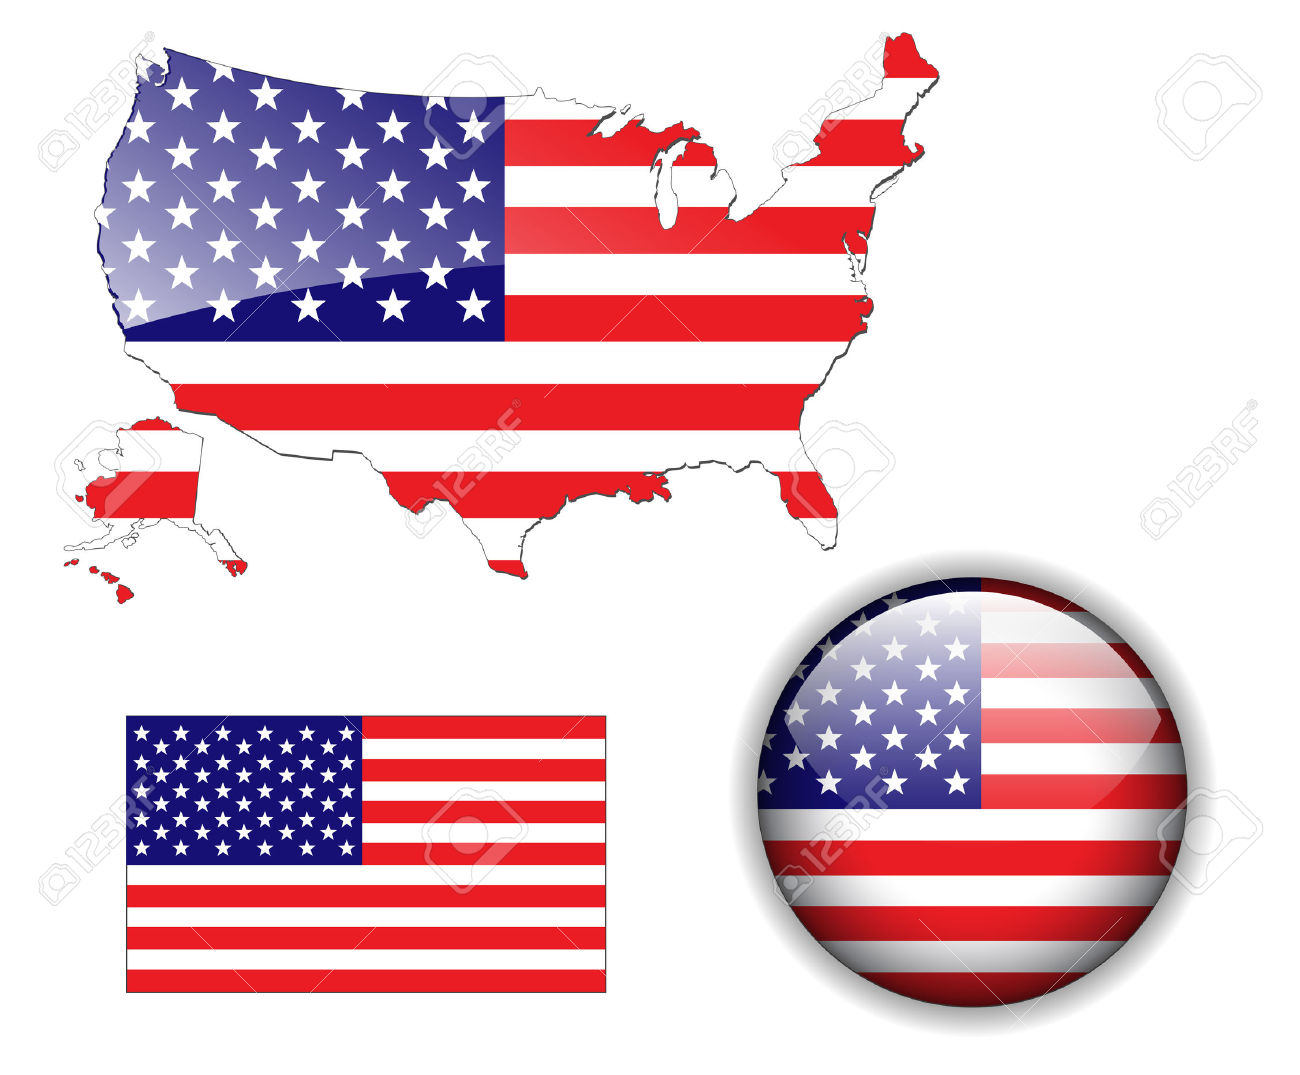 Us map flag clipart image royalty free stock North American USA Flag, Map And Glossy Button Royalty Free ... image royalty free stock